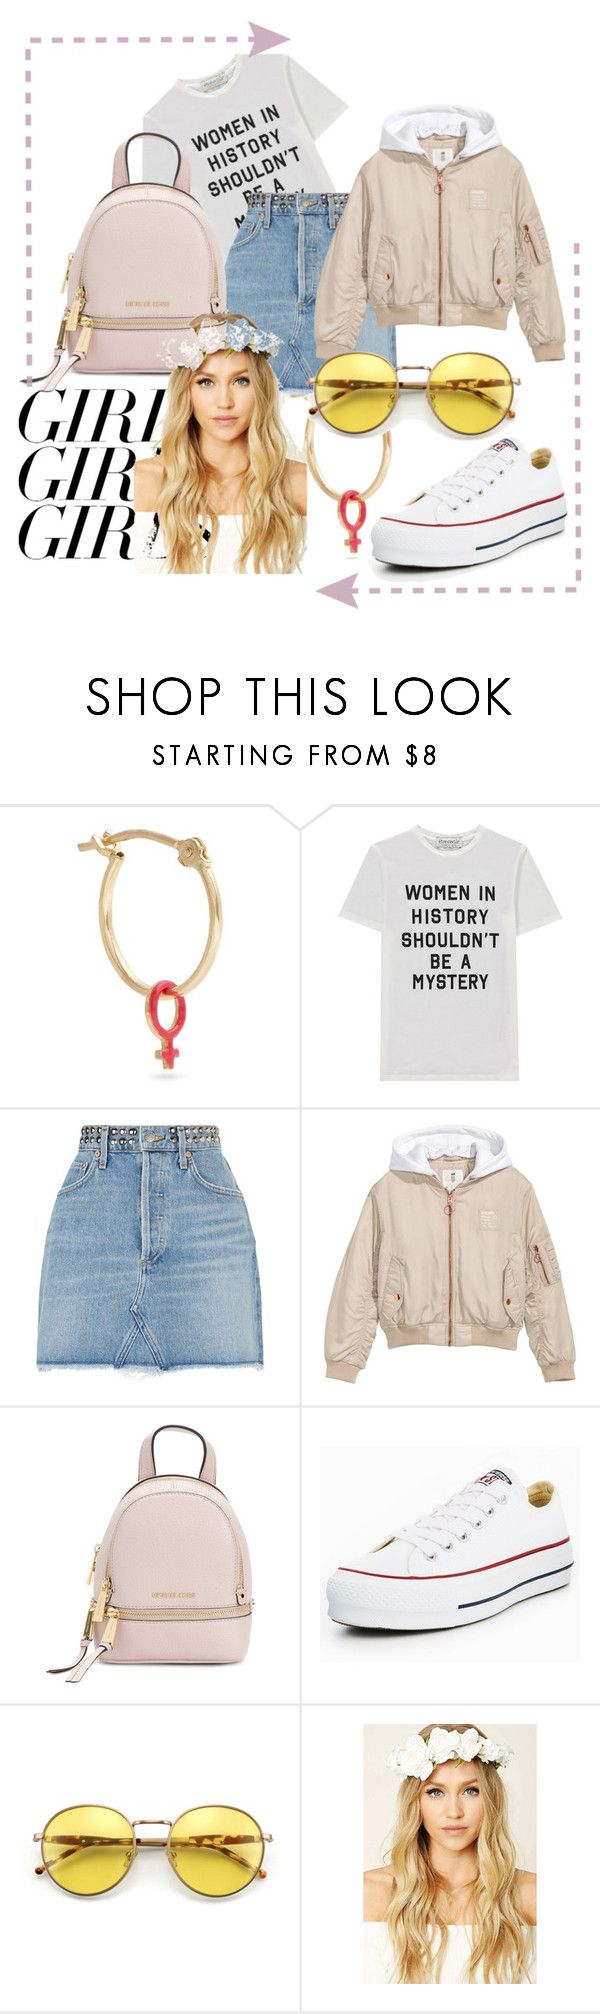 """""""Love spring"""" by r-alisa ❤ liked on Polyvore featuring Alison Lou, Être Cécile, AGOLDE, H&M, MICHAEL Michael Kors, Converse, Forever 21, womensHistoryMonth, pressforprogress and GirlPride"""